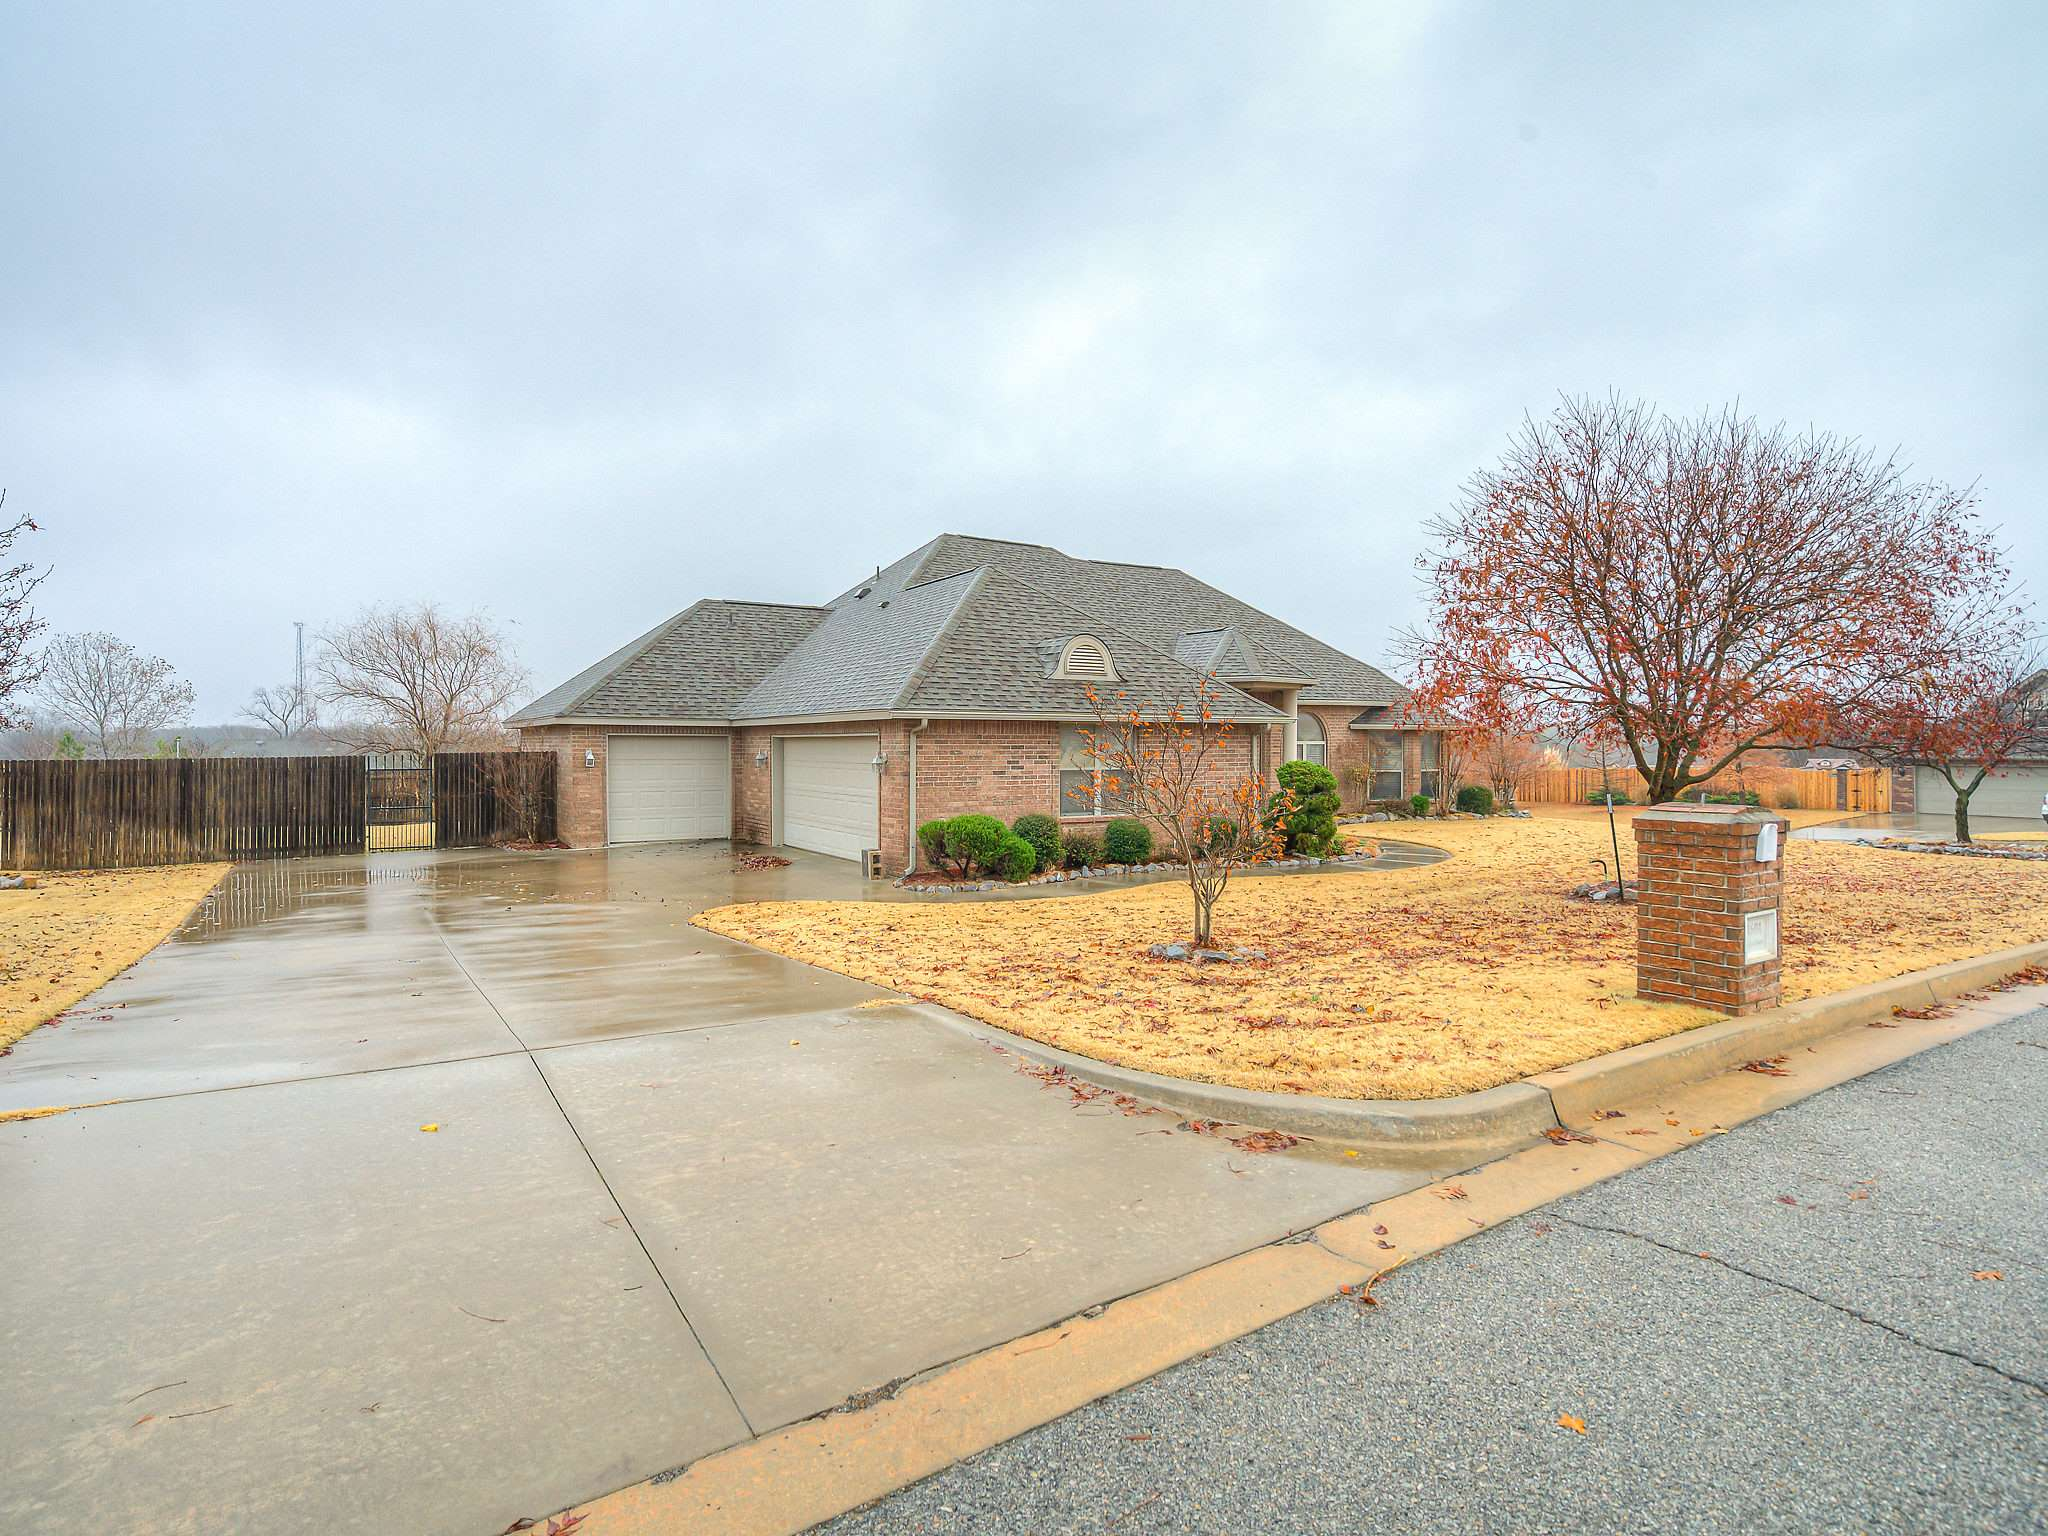 4601 None Kellye Green None, Shawnee, OK 74804